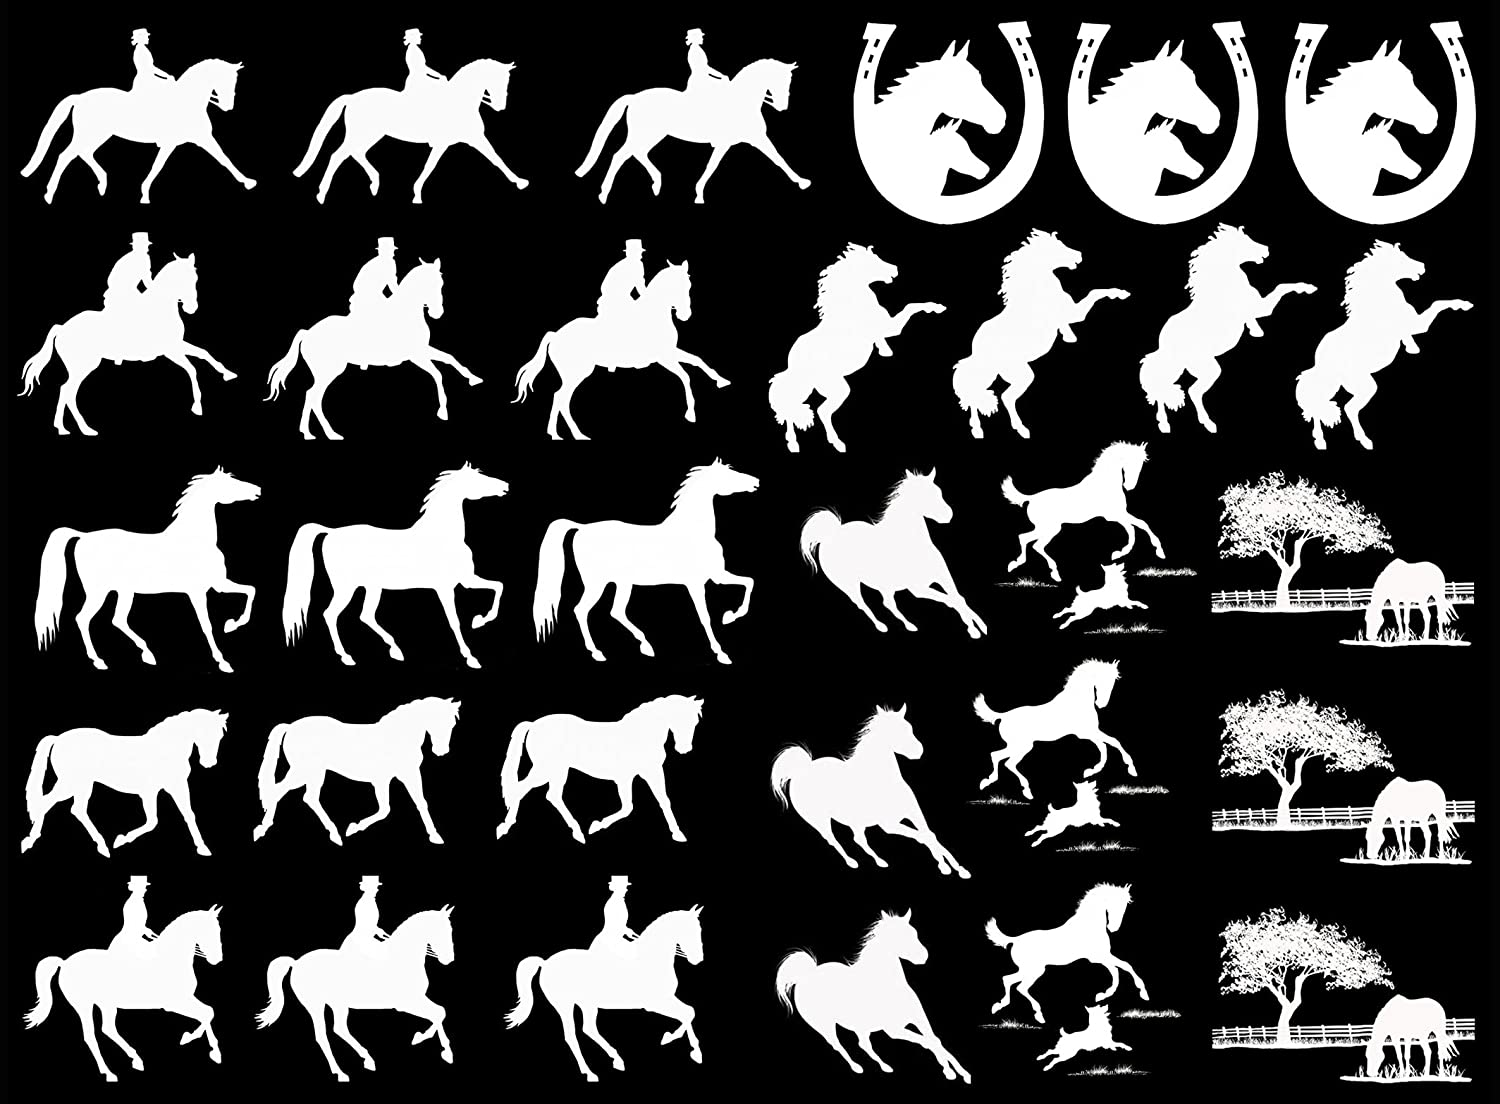 Horse Play 1' to 1-1/4' - White 16CC586 Fused Glass Decals Must be kiln fired Captive Decals